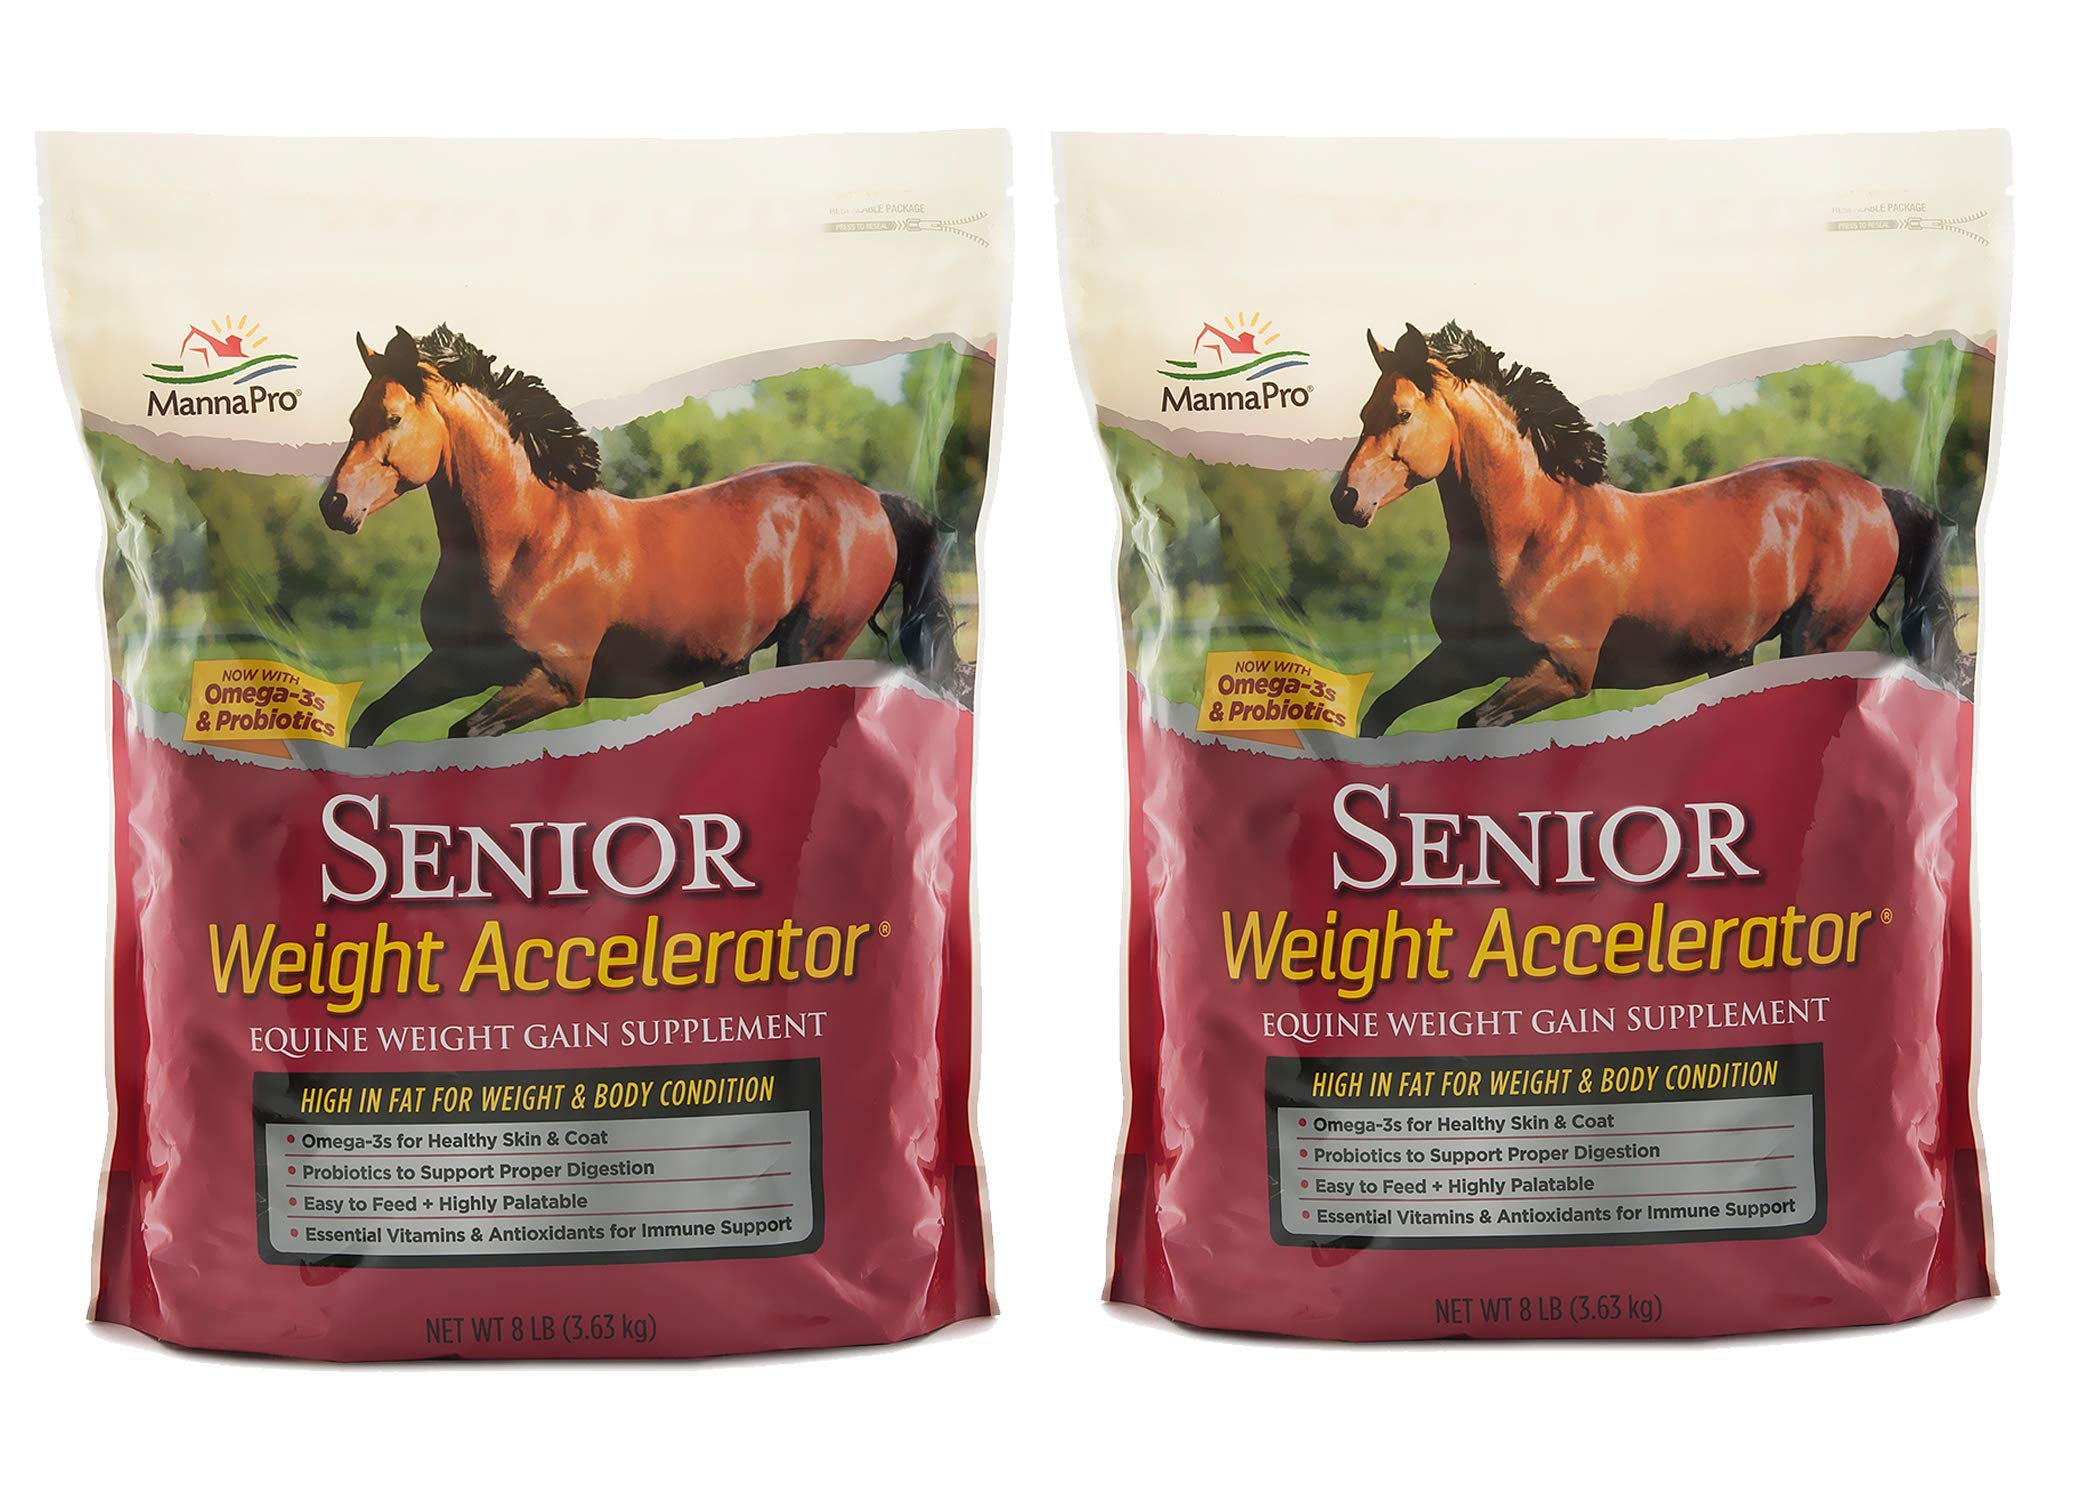 Manna Pro Senior Weight Accelerator for Horses, 8 Pounds (Pack of 2) by Manna Pro